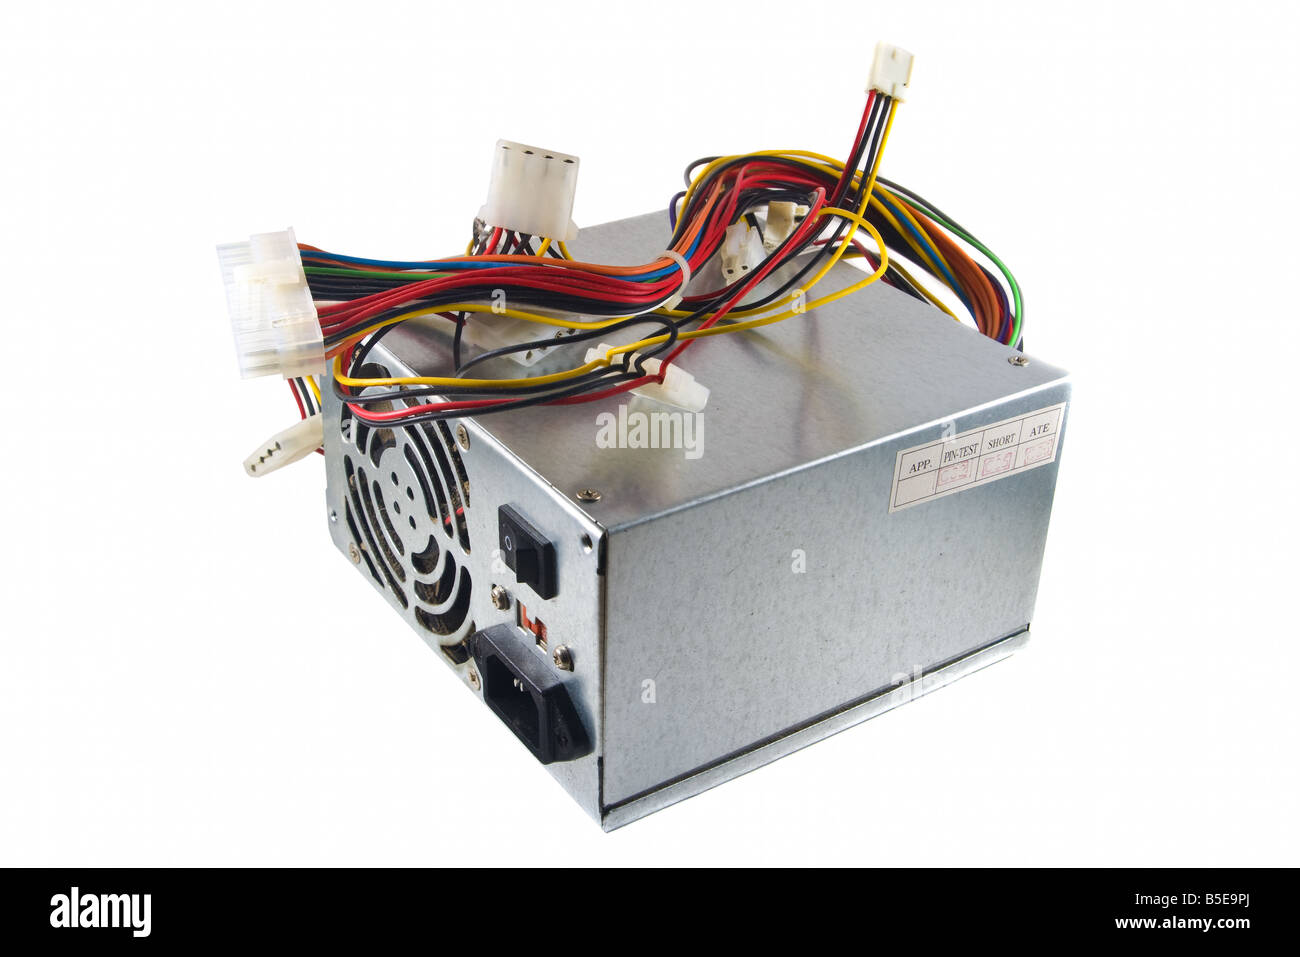 Computer Power Supply Cut Out Stock Images & Pictures - Alamy